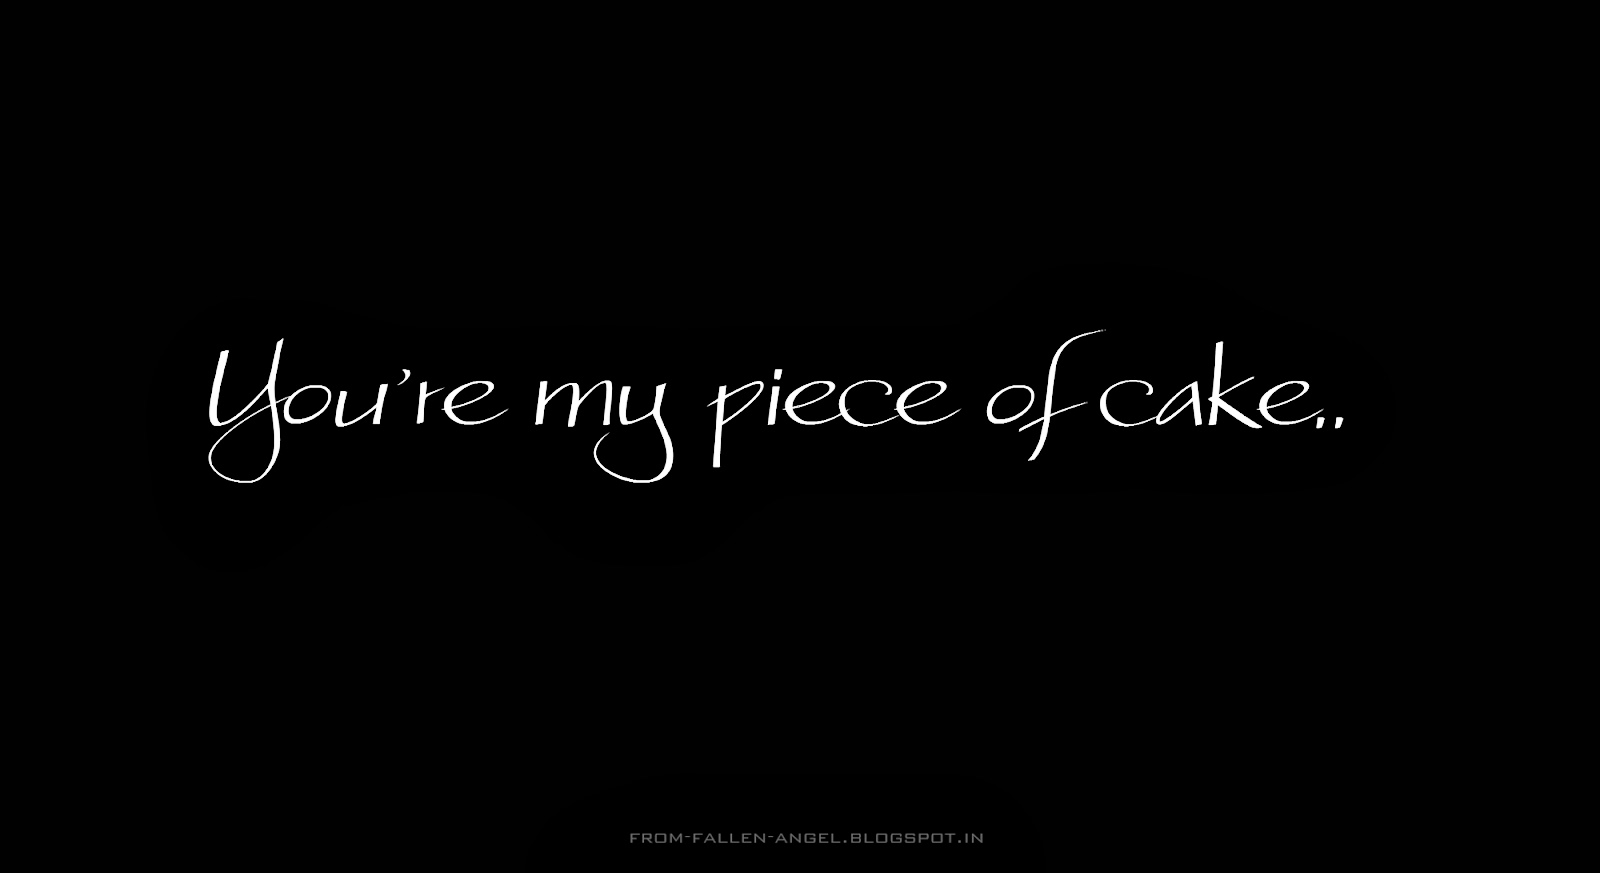 You're my piece of cake..